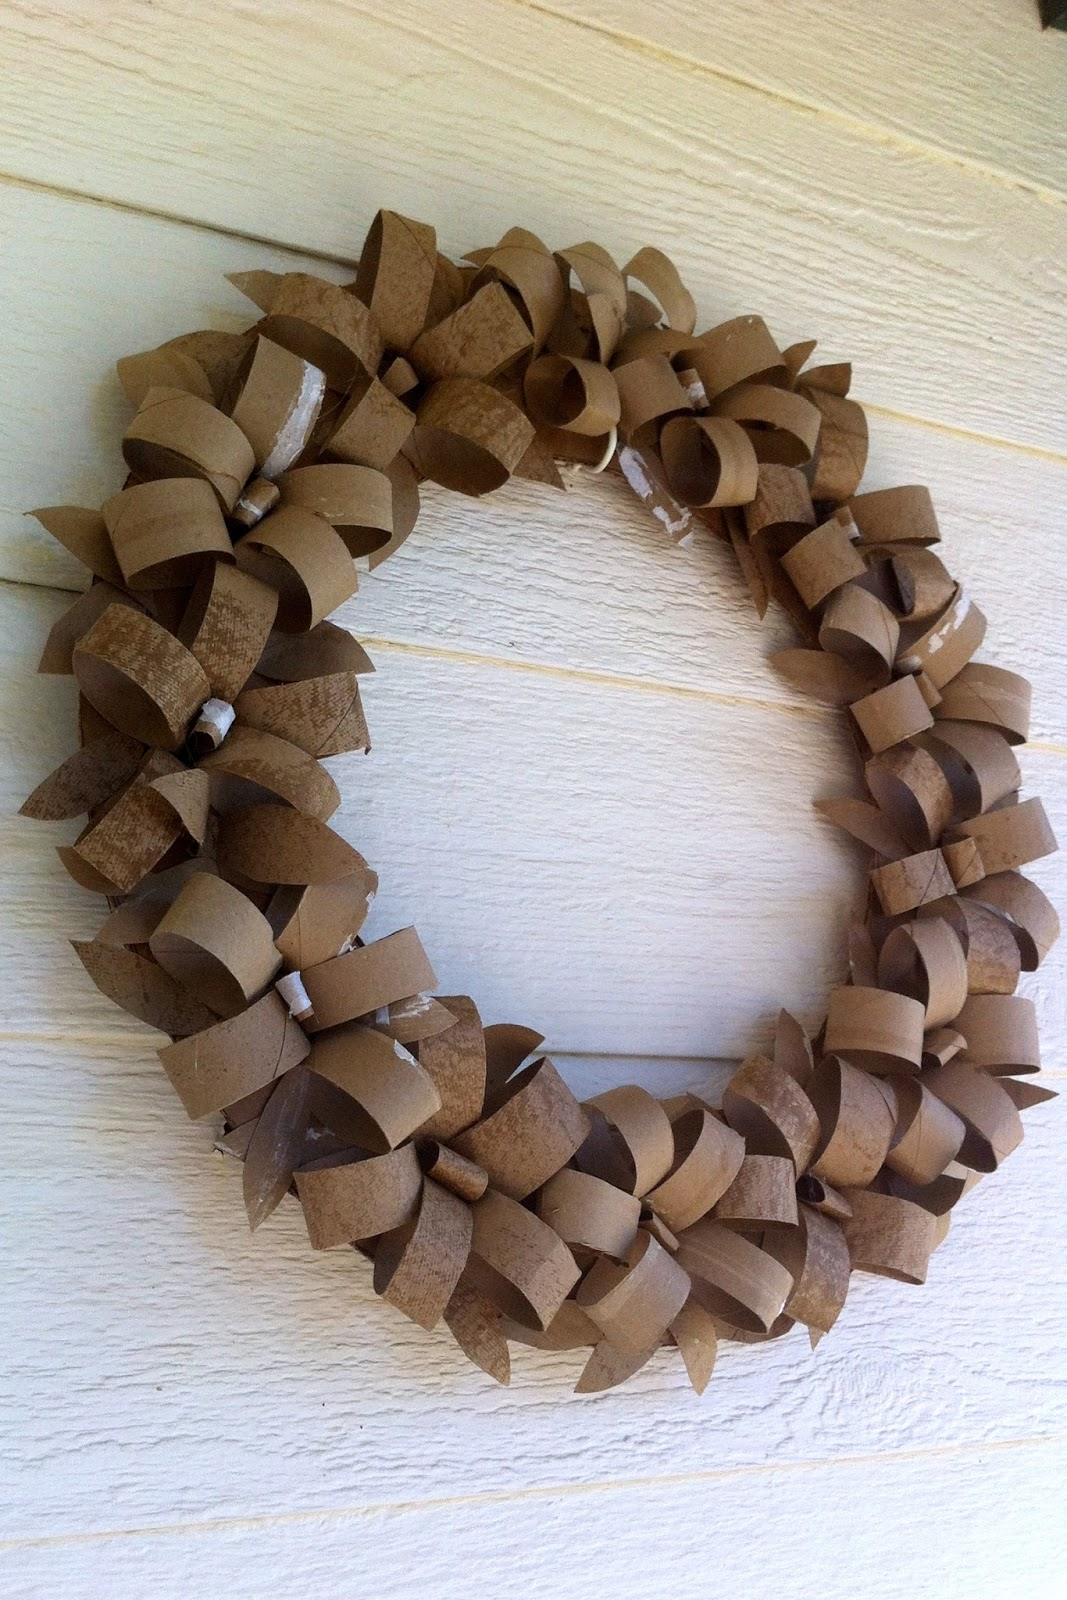 How to make a christmas decor out of recycled materials - Gallery For Gt Toilet Paper Roll Crafts Wreath